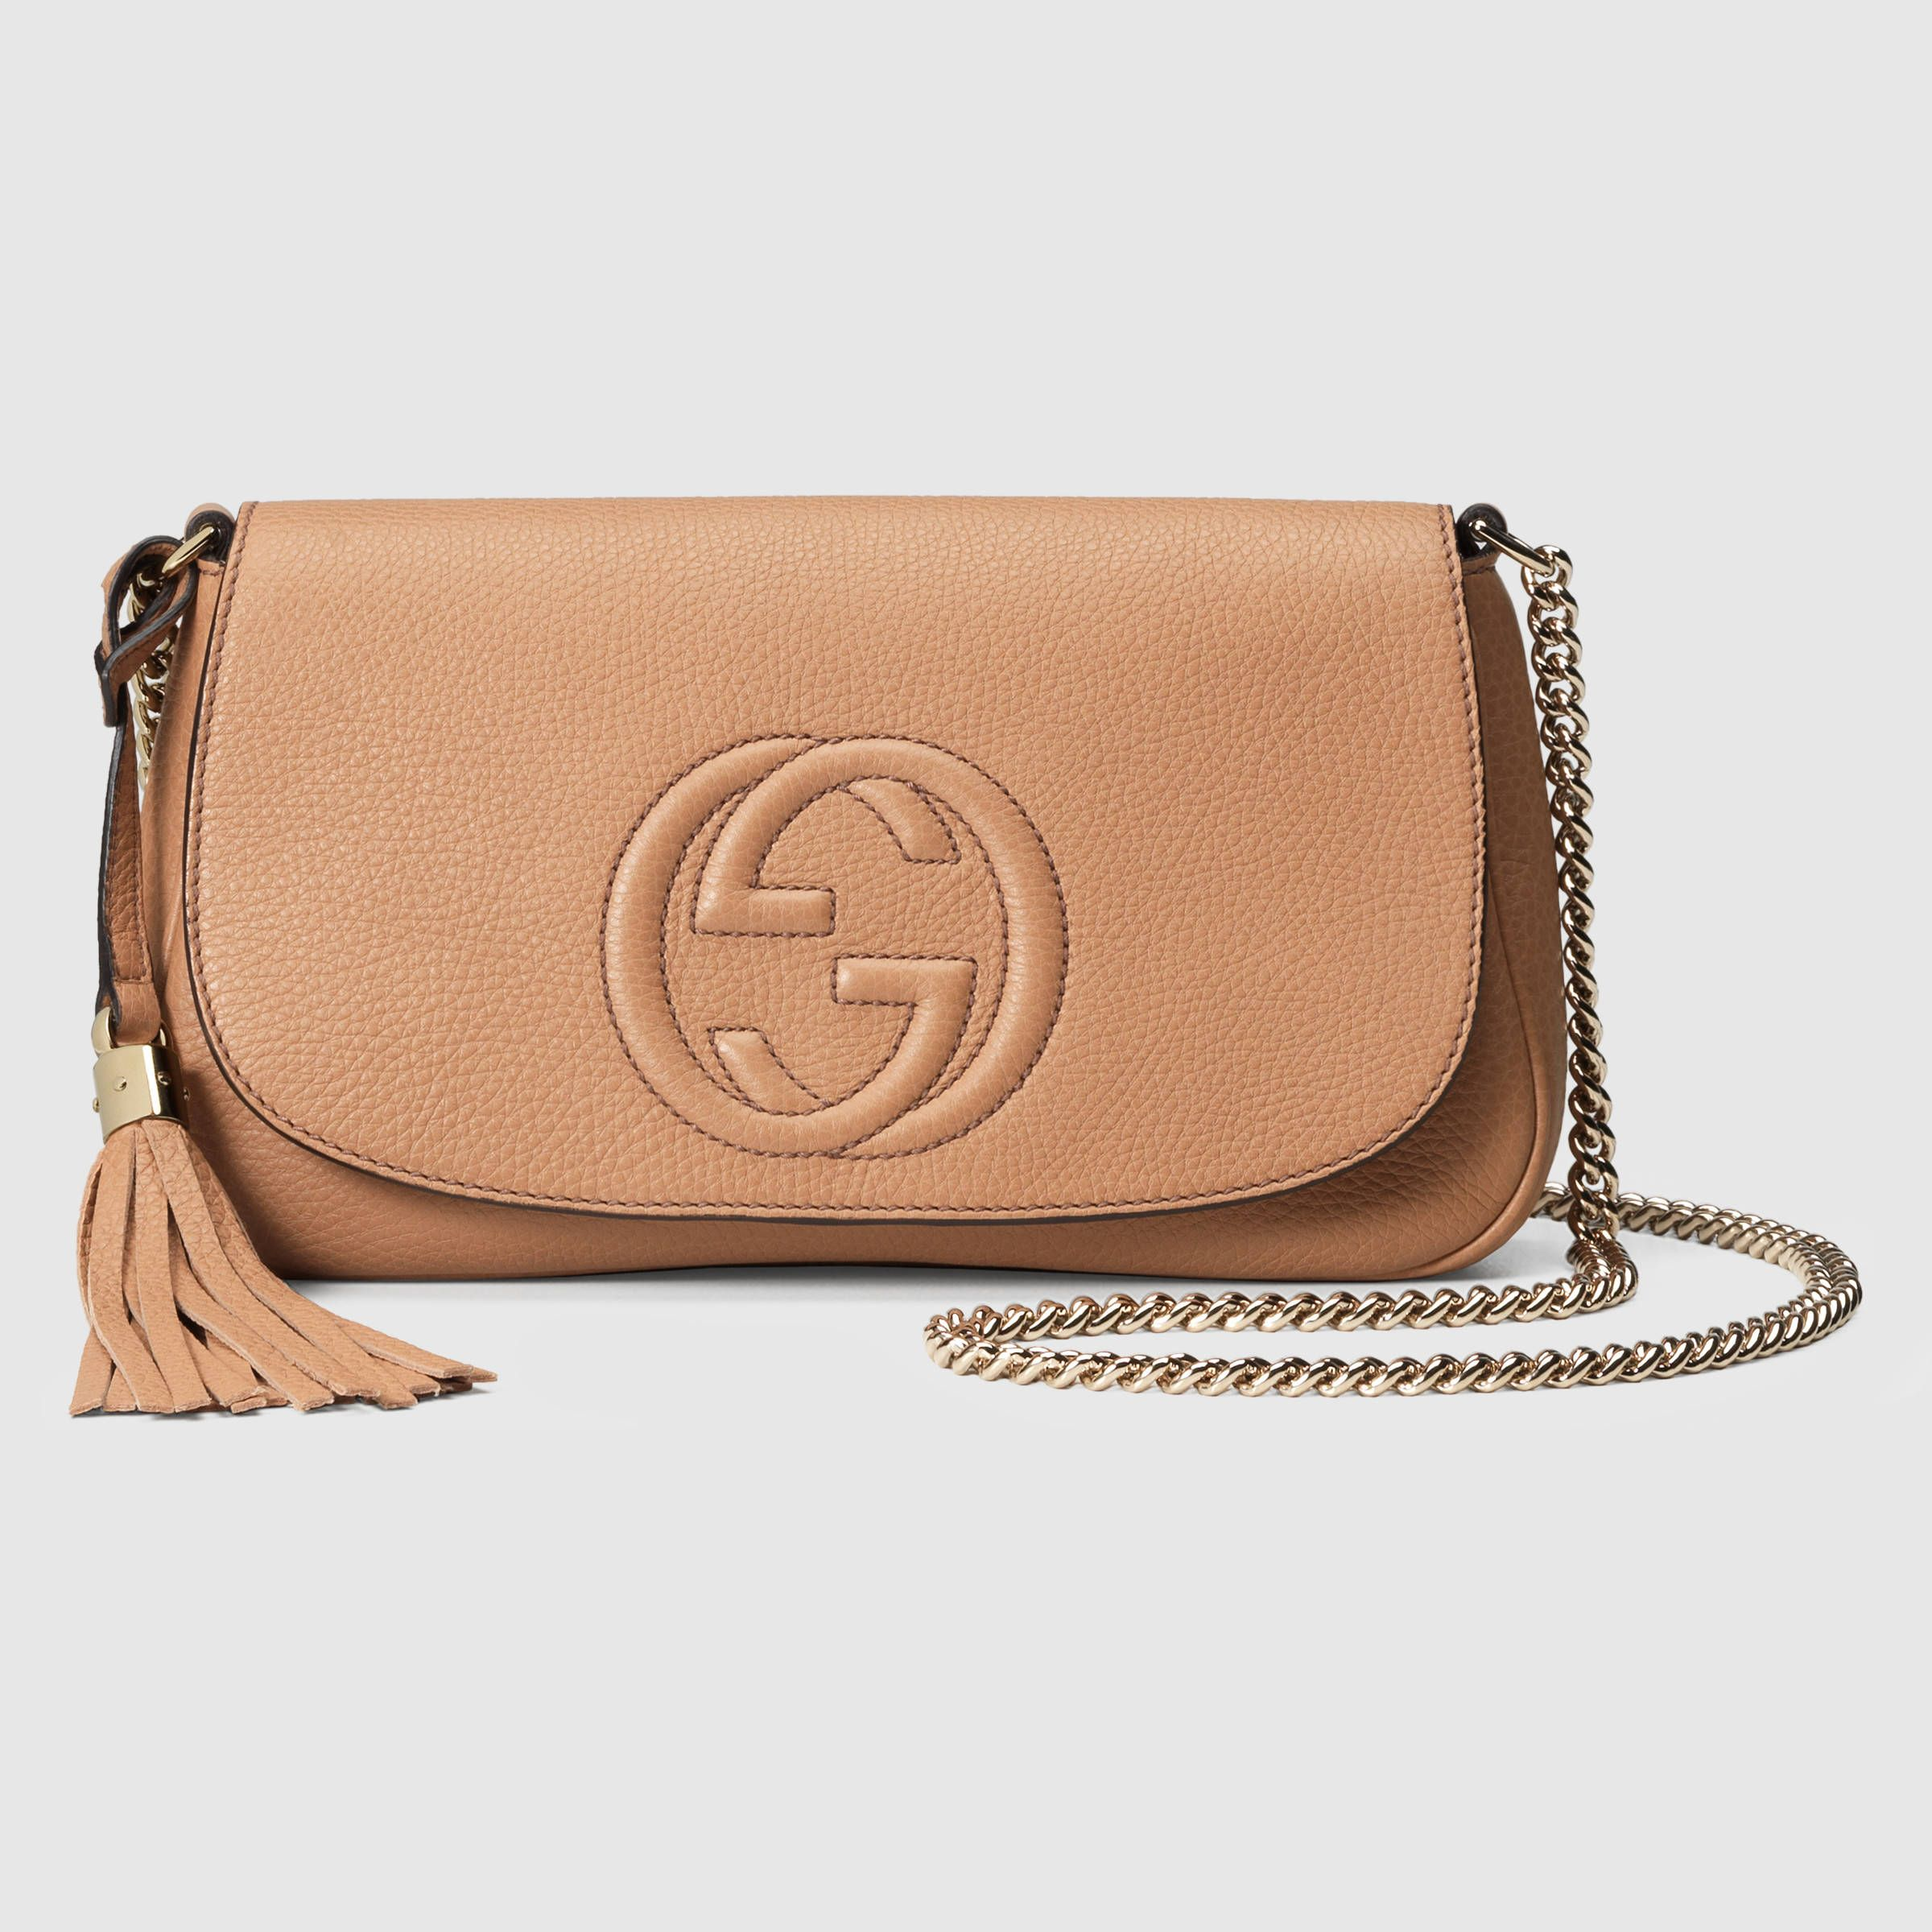 ad35e9aca89c60 Gucci Women - Soho leather shoulder bag - 336752A7M0G2754 | Bags ...